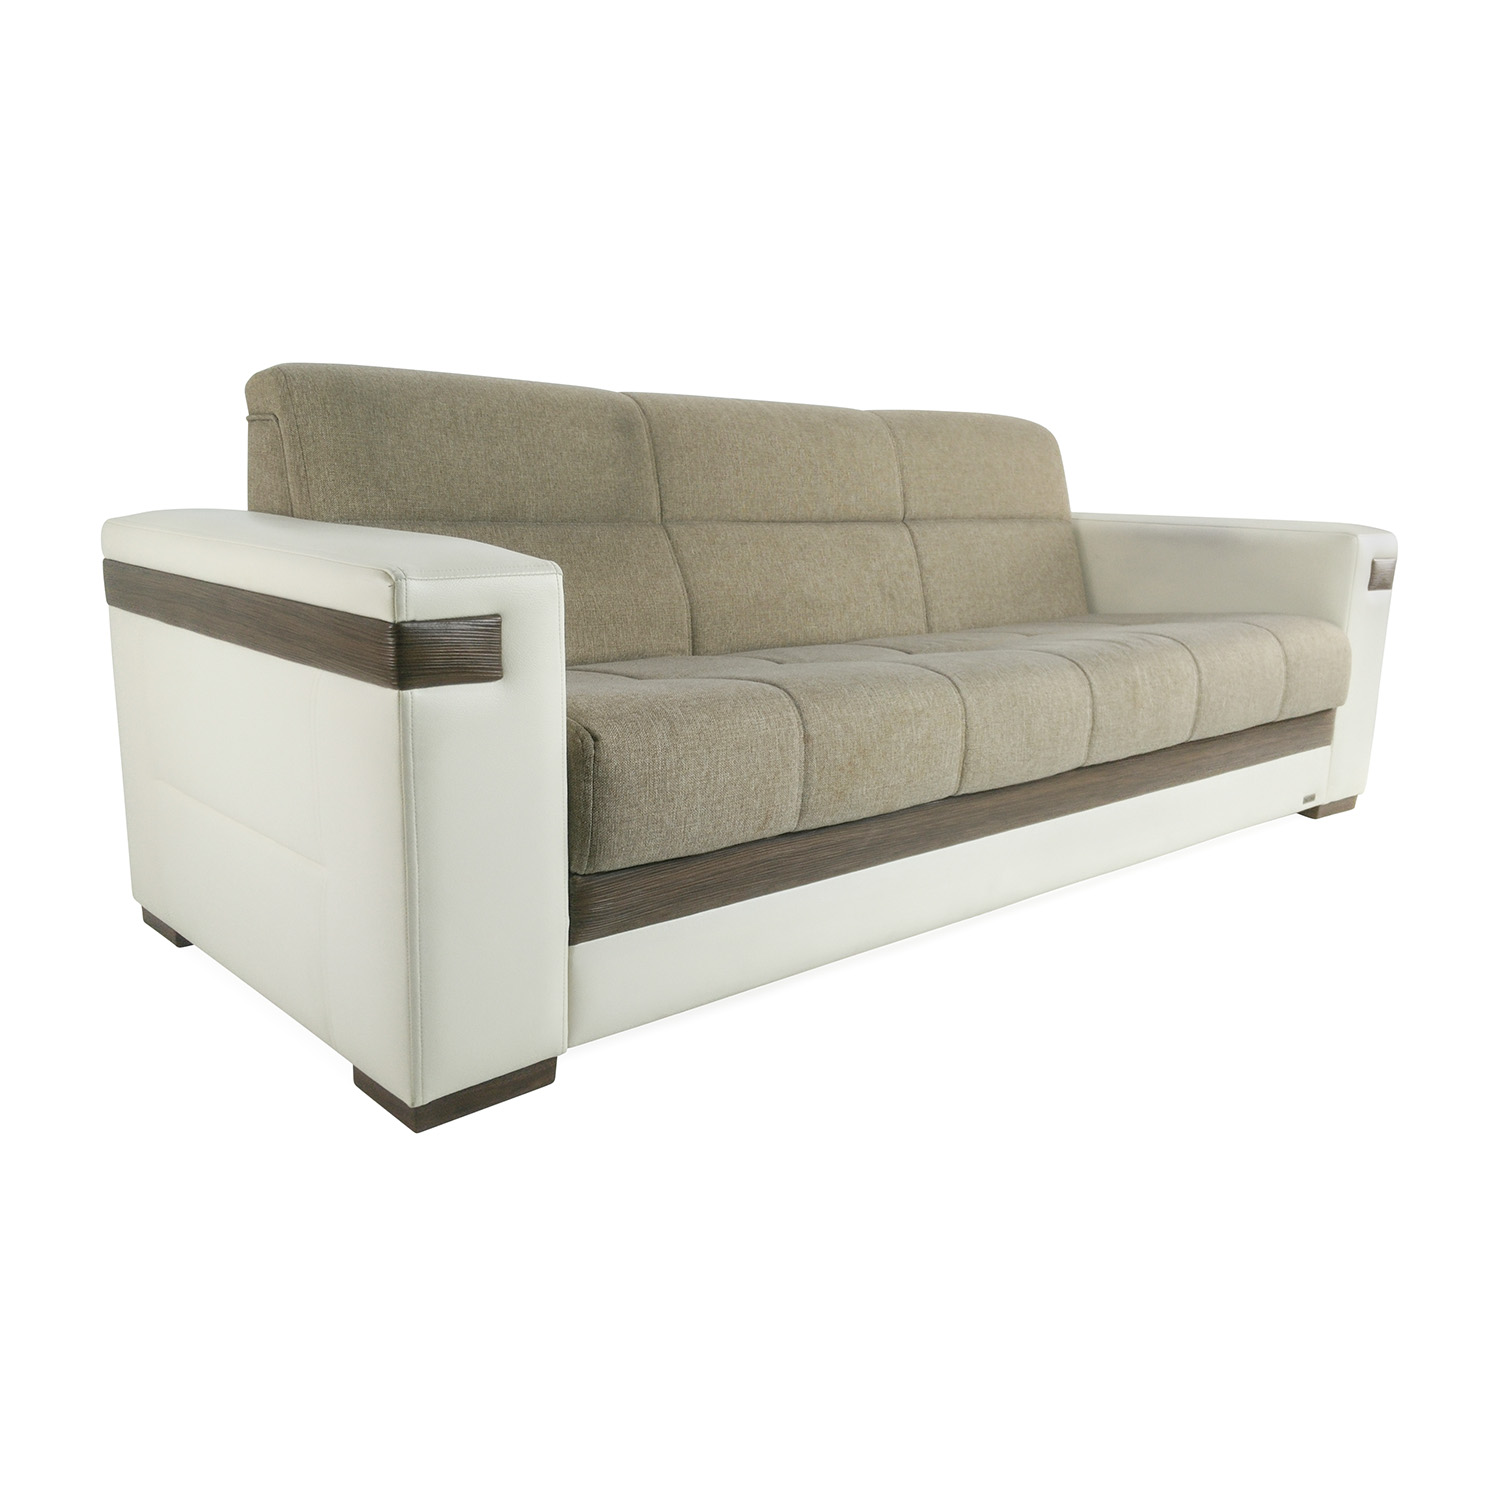 75% OFF Bellona Bellona Contemporary Sofa Sofas